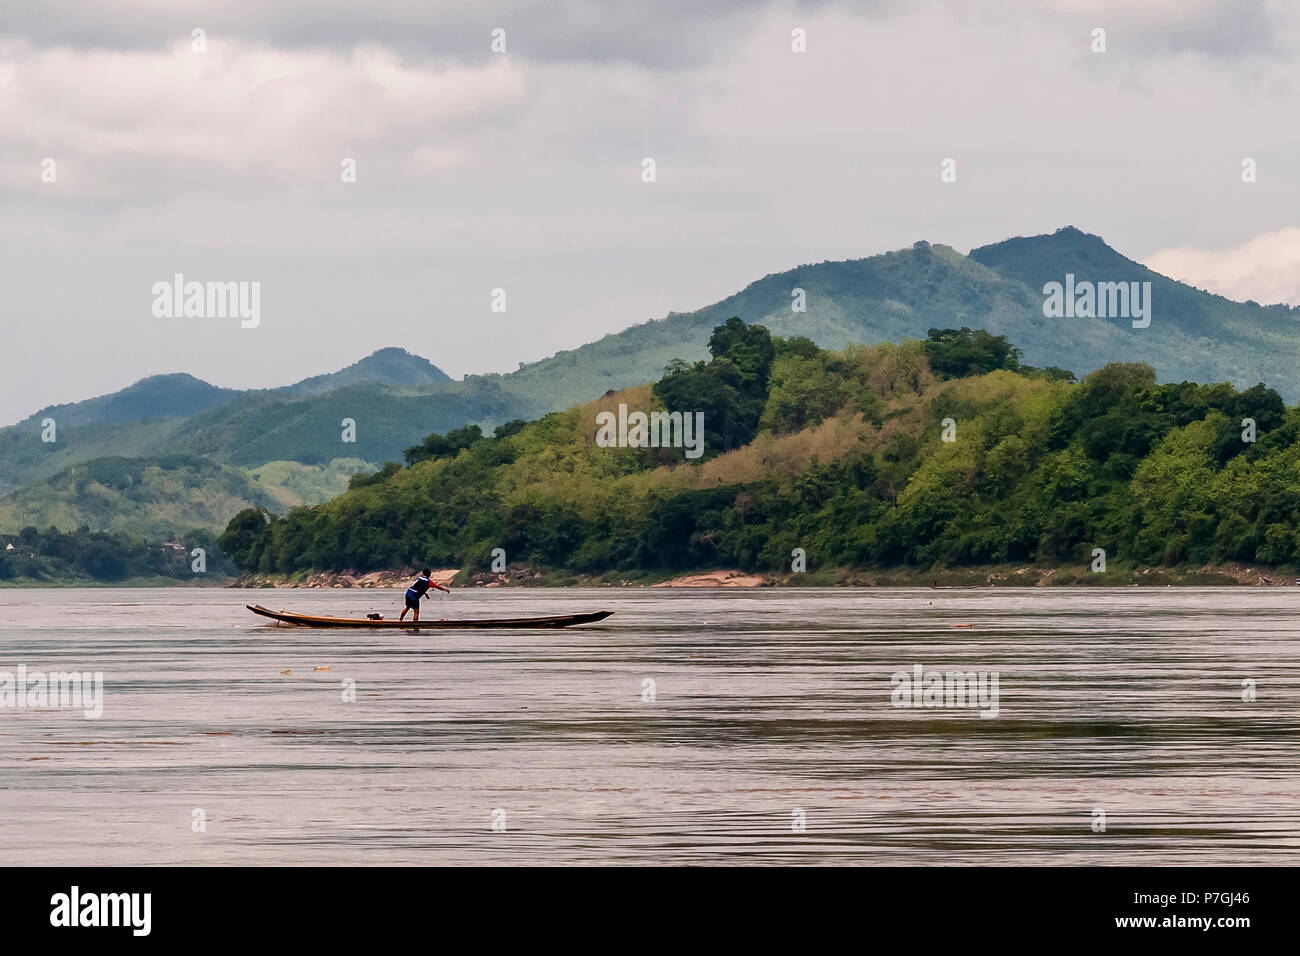 Fisherman poised on the boat launches the net on the Mekong River, Luang Prabang, Laos - Stock Image